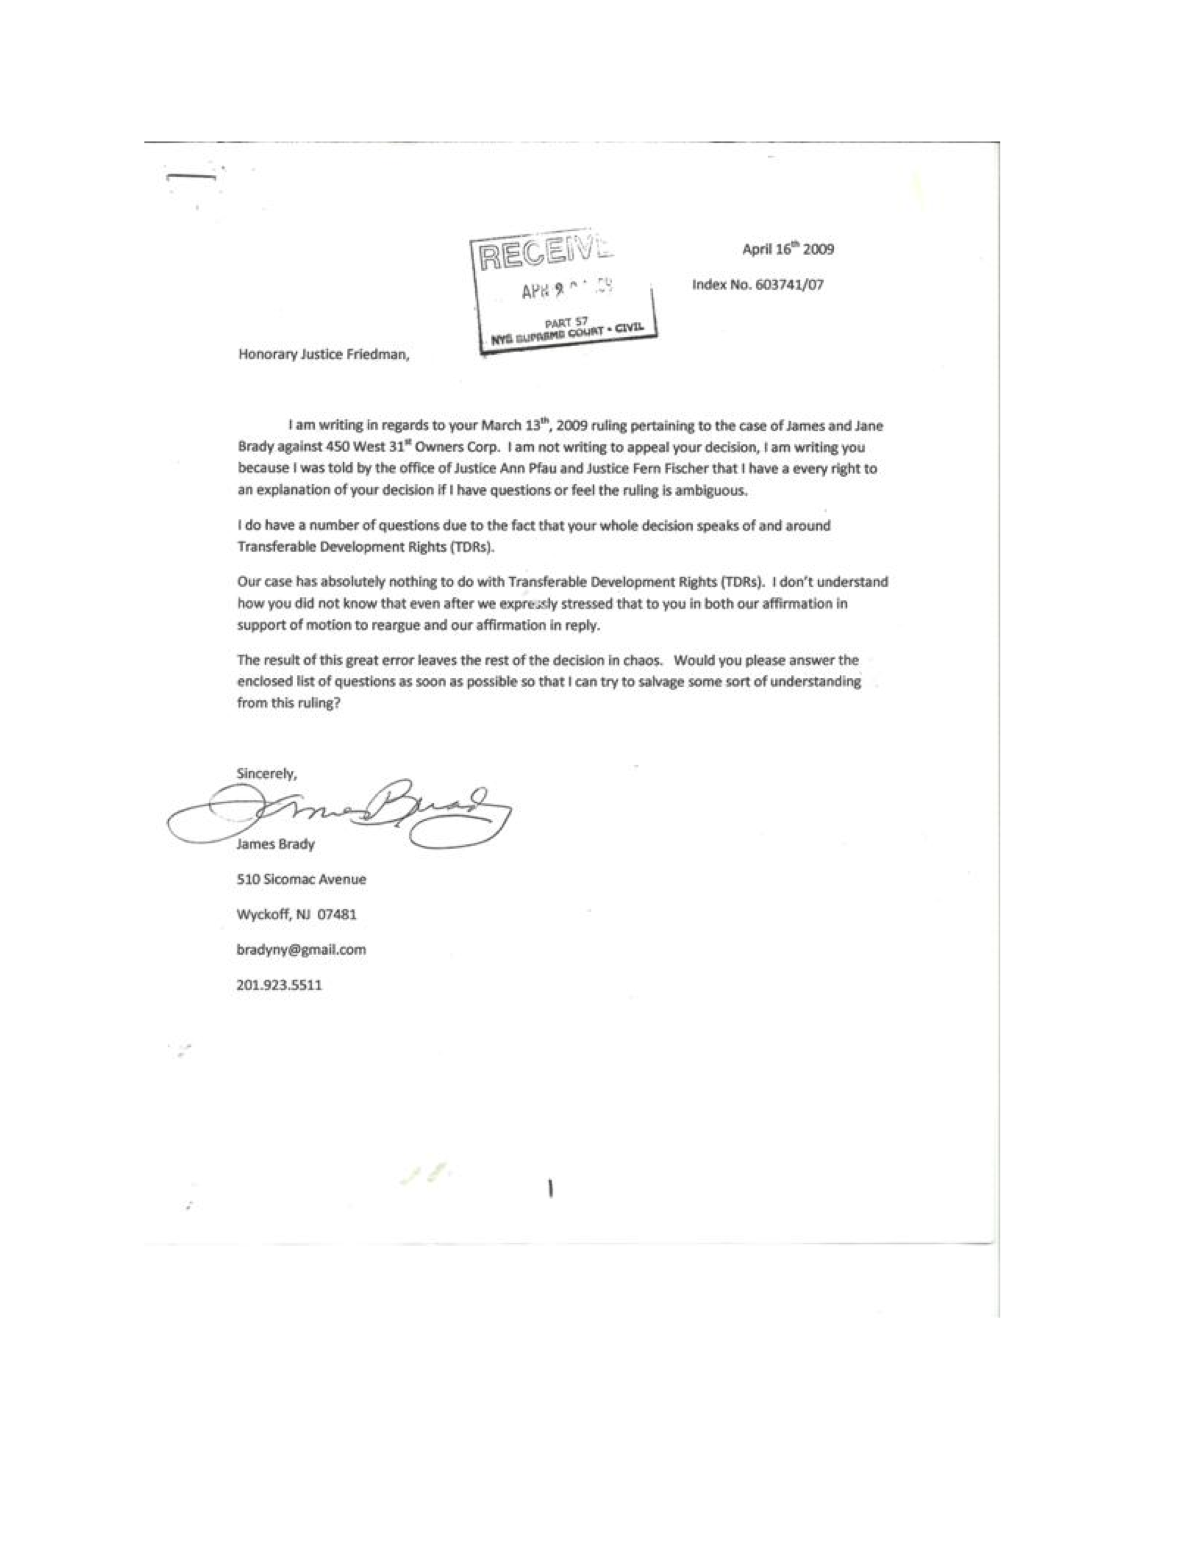 "In response, on April 22, 2009 Court Attorney Lee Gregory sent a letter back to Mr. Brady refusing to answer any questions clarifying Justice Friedman's decision. Gregory stated that, ""The court cannot entertain your ex parte request for an explanation of the court's March 13, 2009 ruling."""